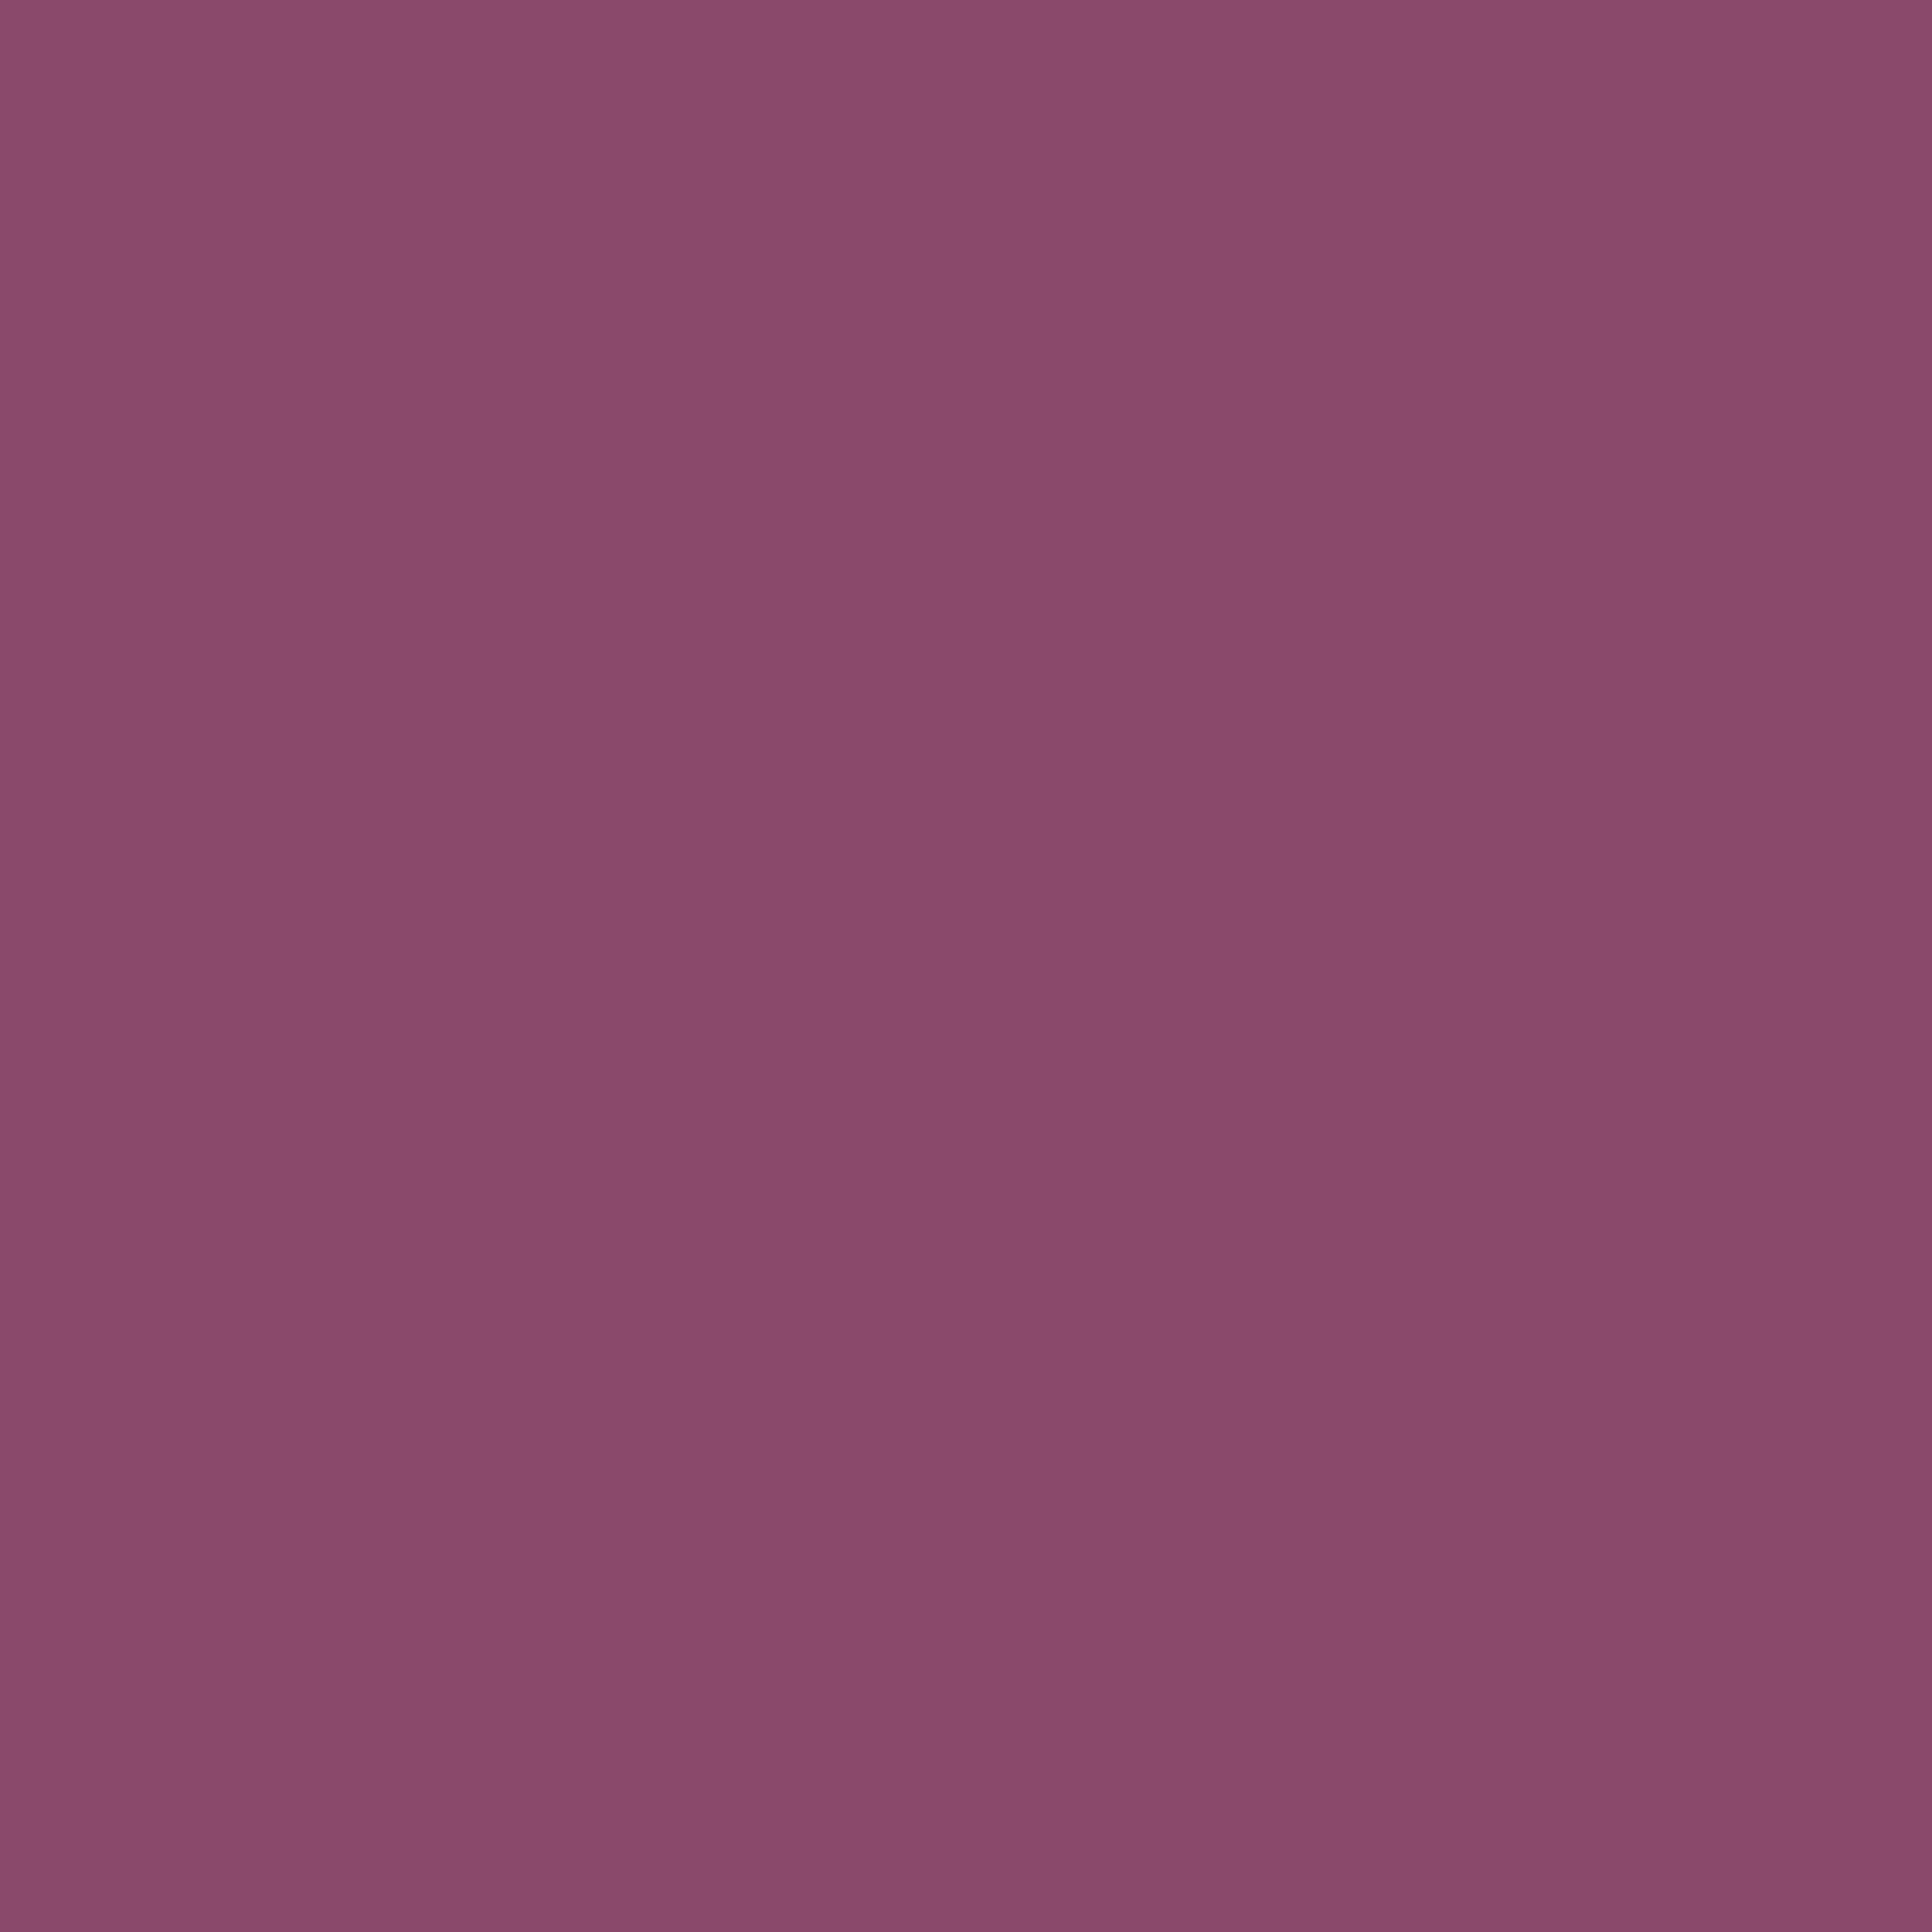 2048x2048 Twilight Lavender Solid Color Background